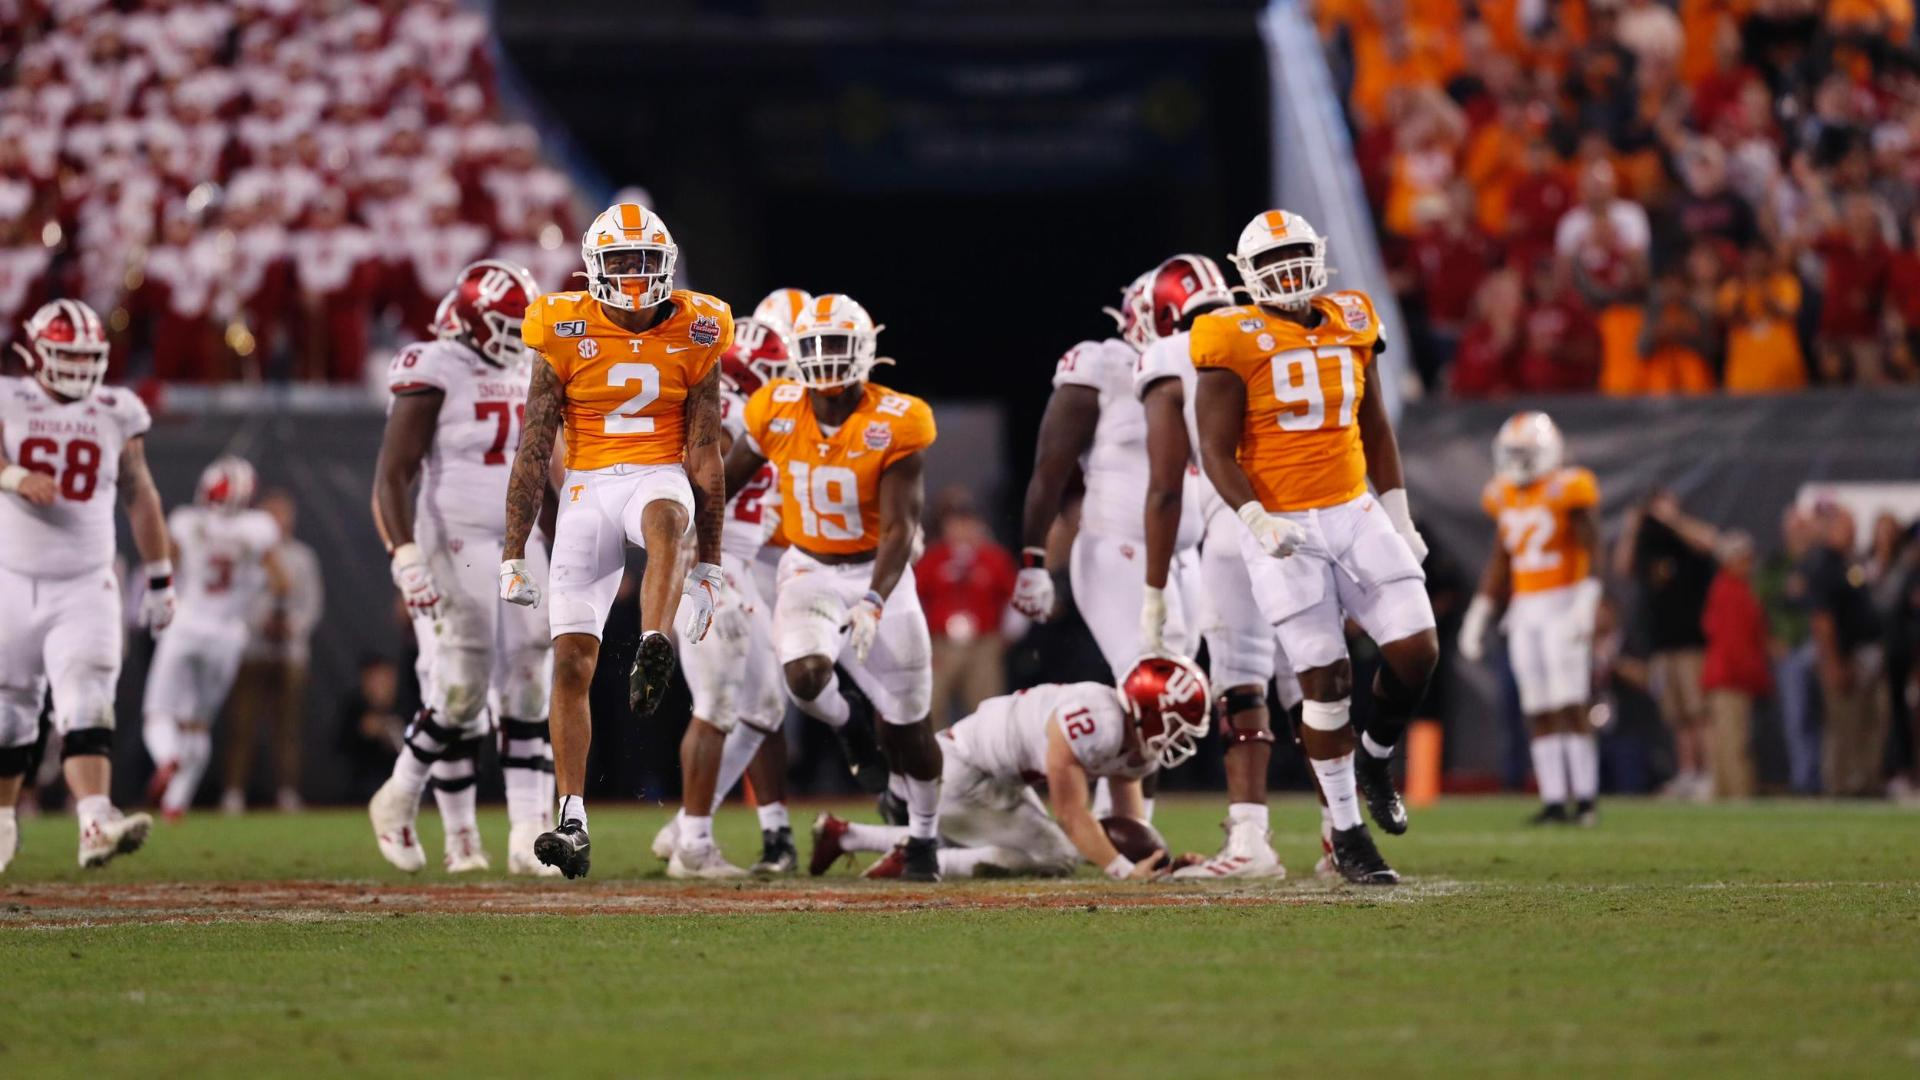 Vols make miraculous fourth-quarter comeback